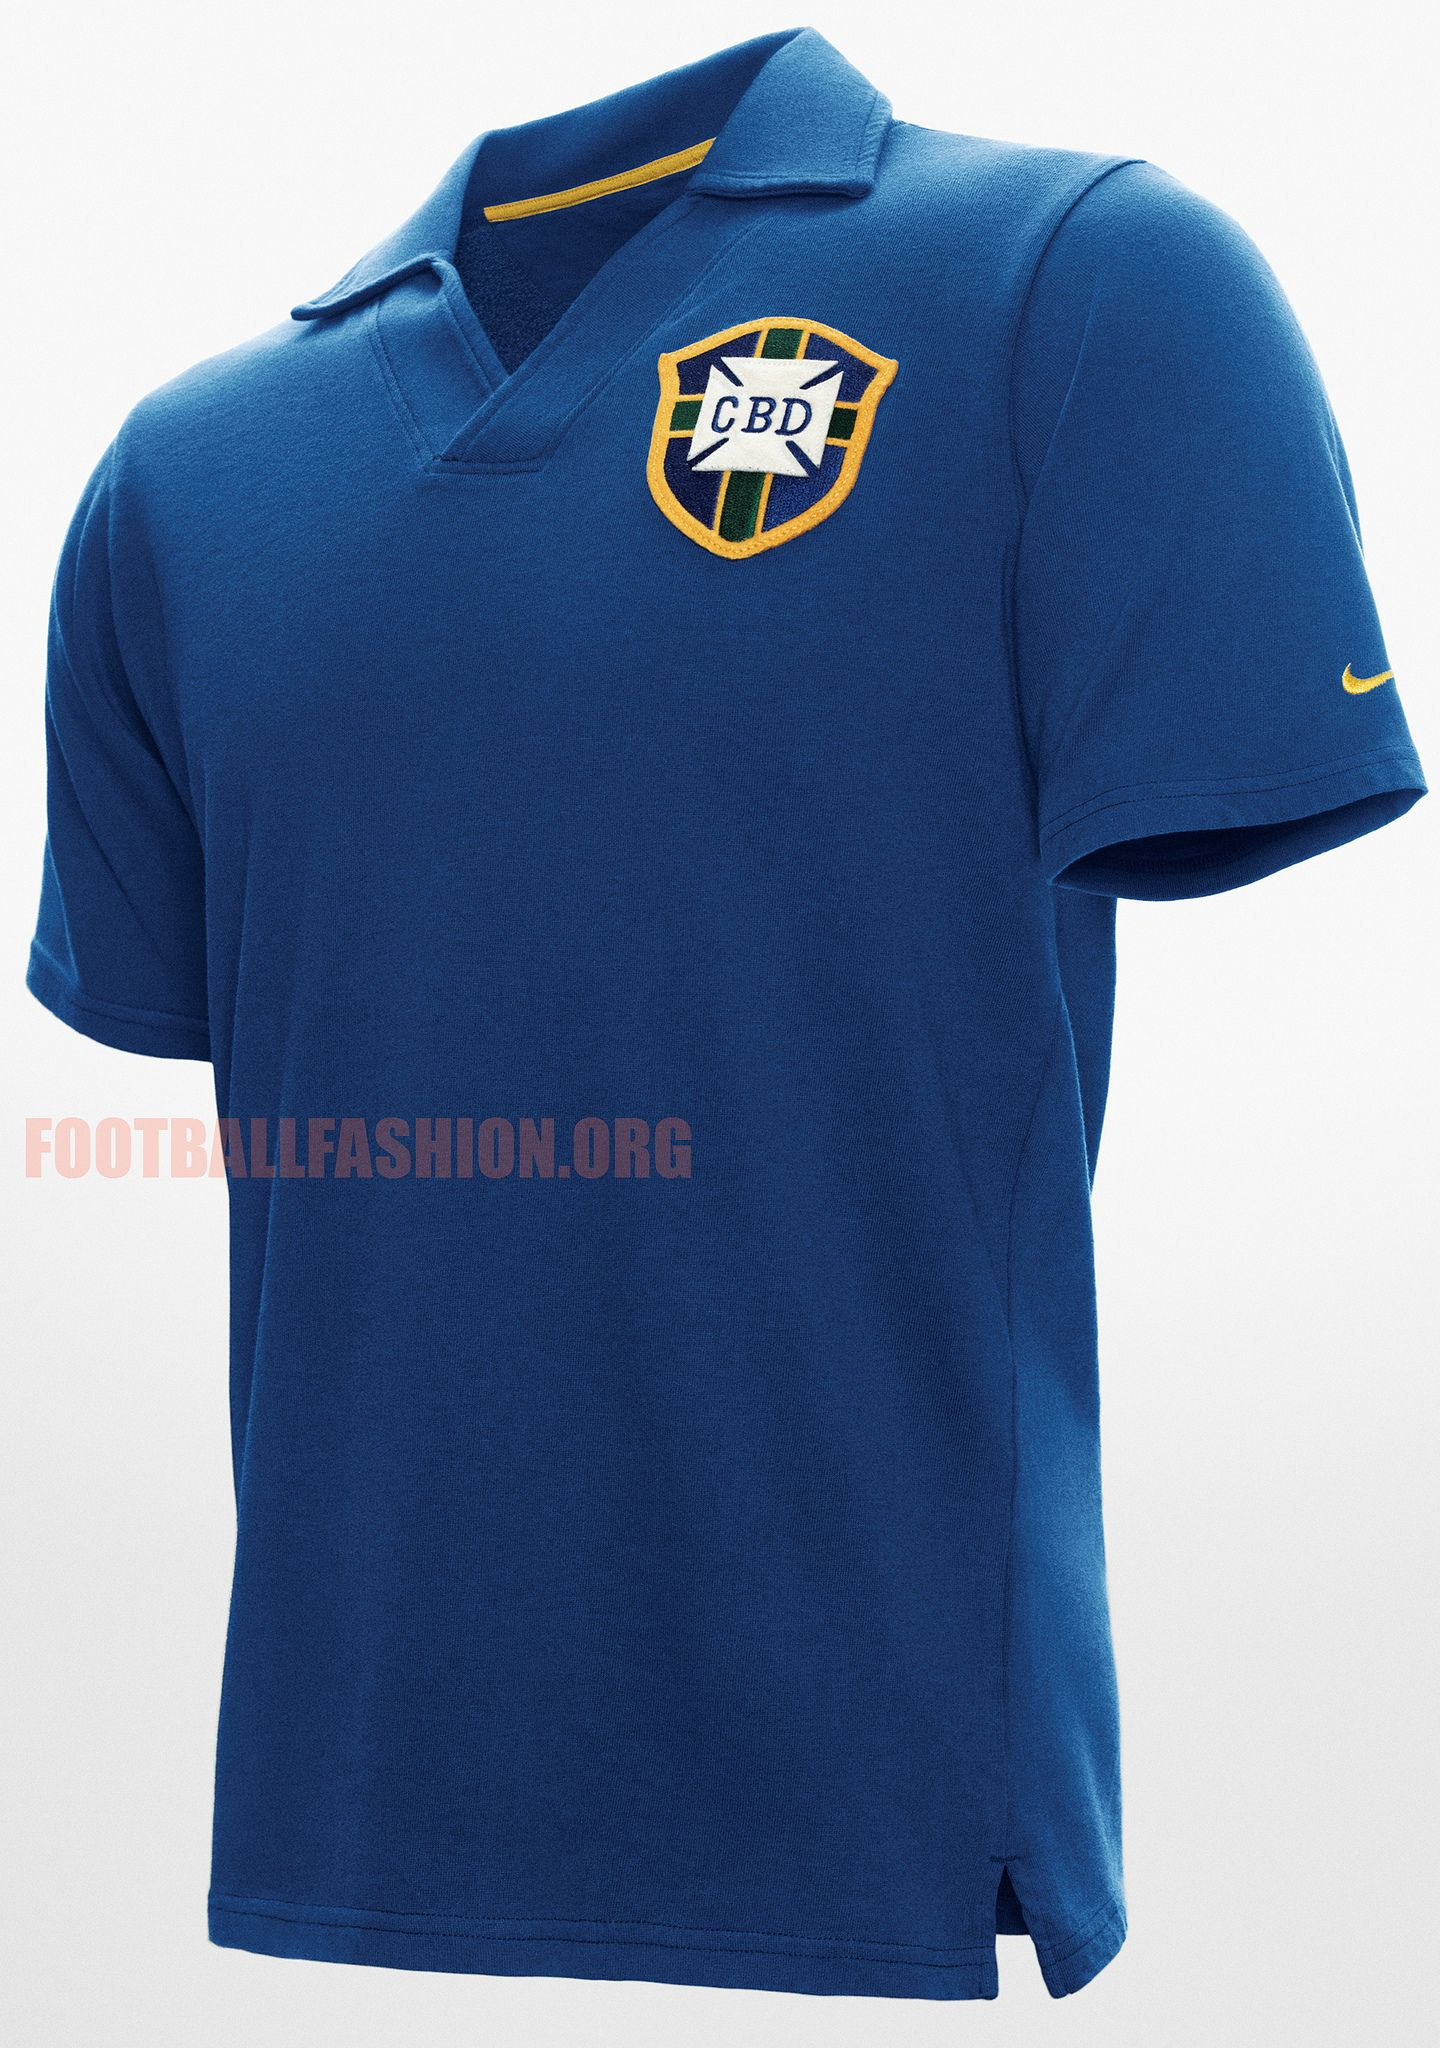 d7b8c6554fa Brazil Nike 1958 World Cup Commemorative Jersey 1958 World Cup